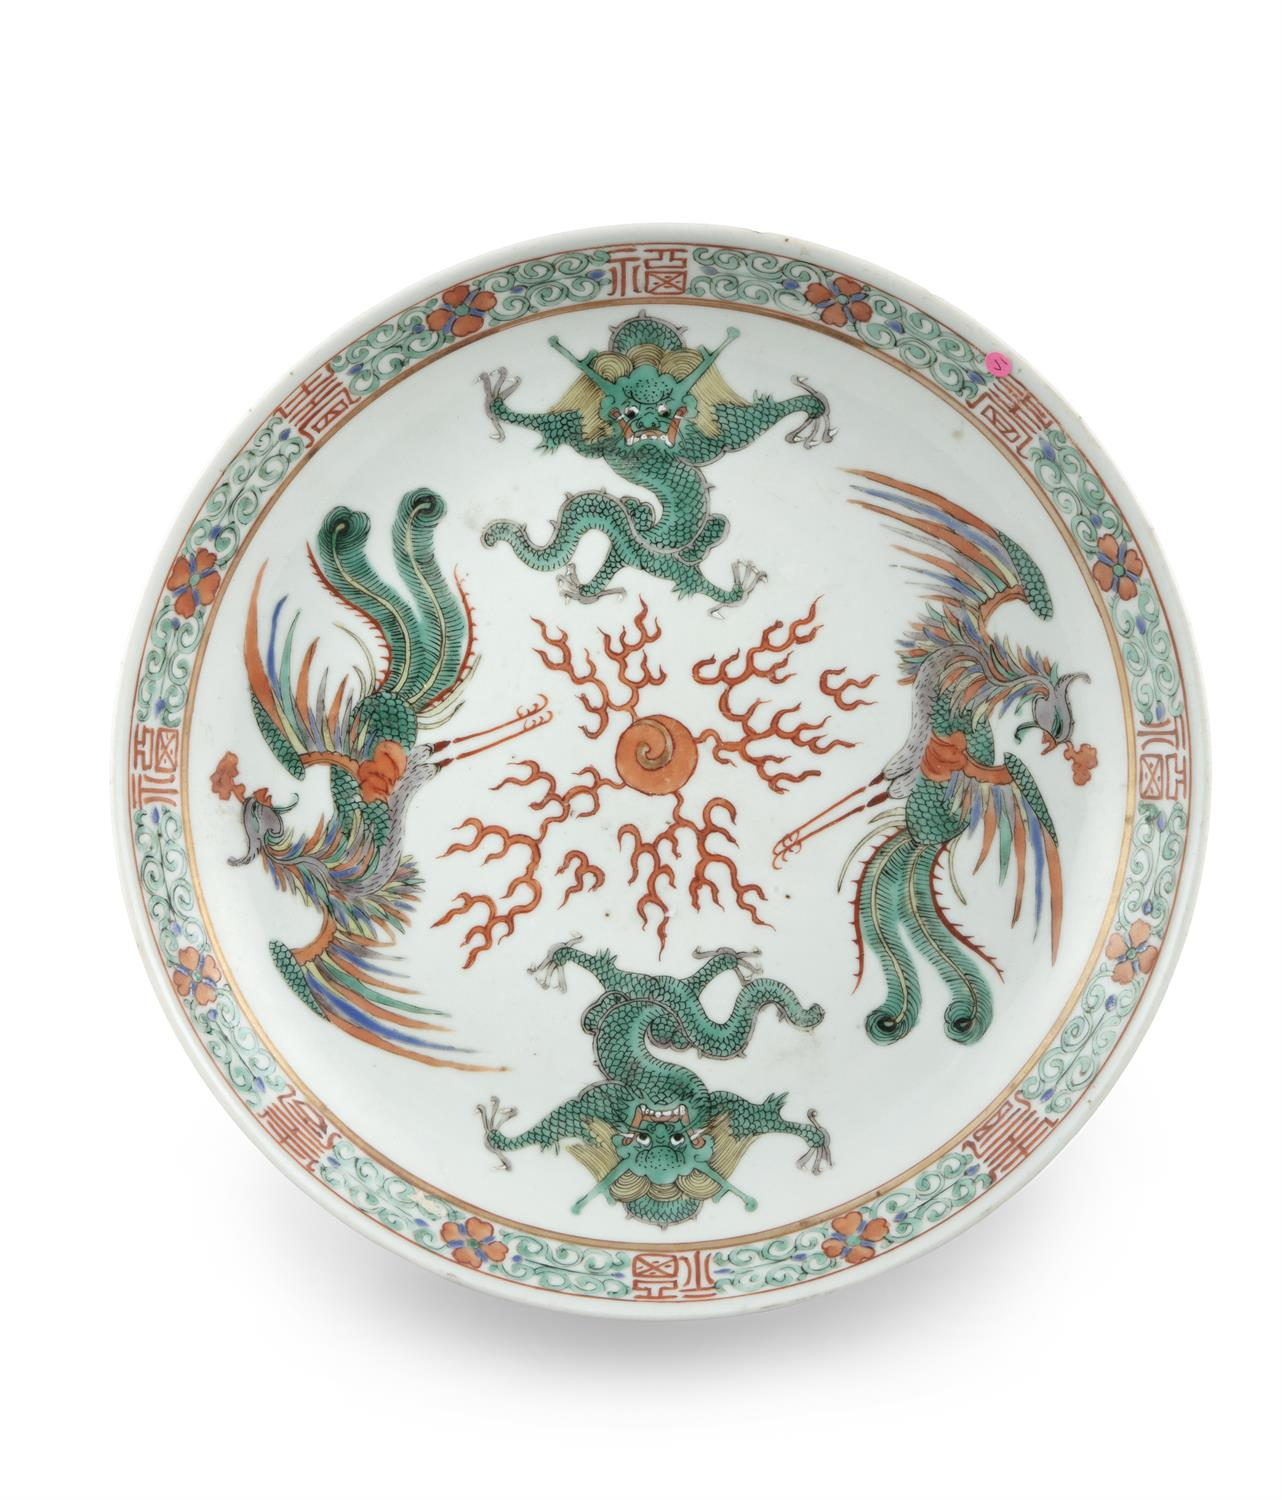 A FAMILLE VERTE 'DRAGON AND PHOENIX' PORCELAIN DISH China, late Qing Dynasty, 19th century The - Image 14 of 18